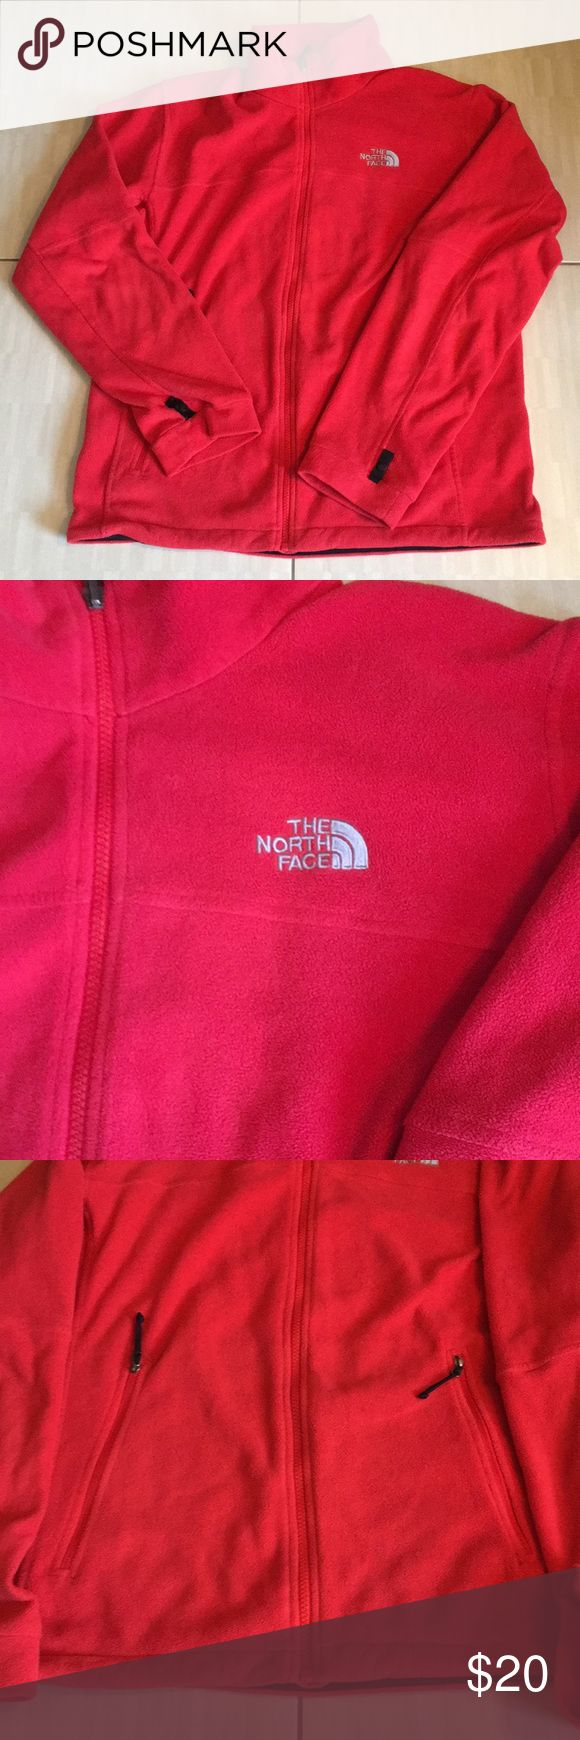 Red North Face zip up jacket/ front pockets Red North Face zip up jacket/ front pockets. Worn several times. Not in bad condition but also not new. North Face Jackets & Coats Lightweight & Shirt Jackets